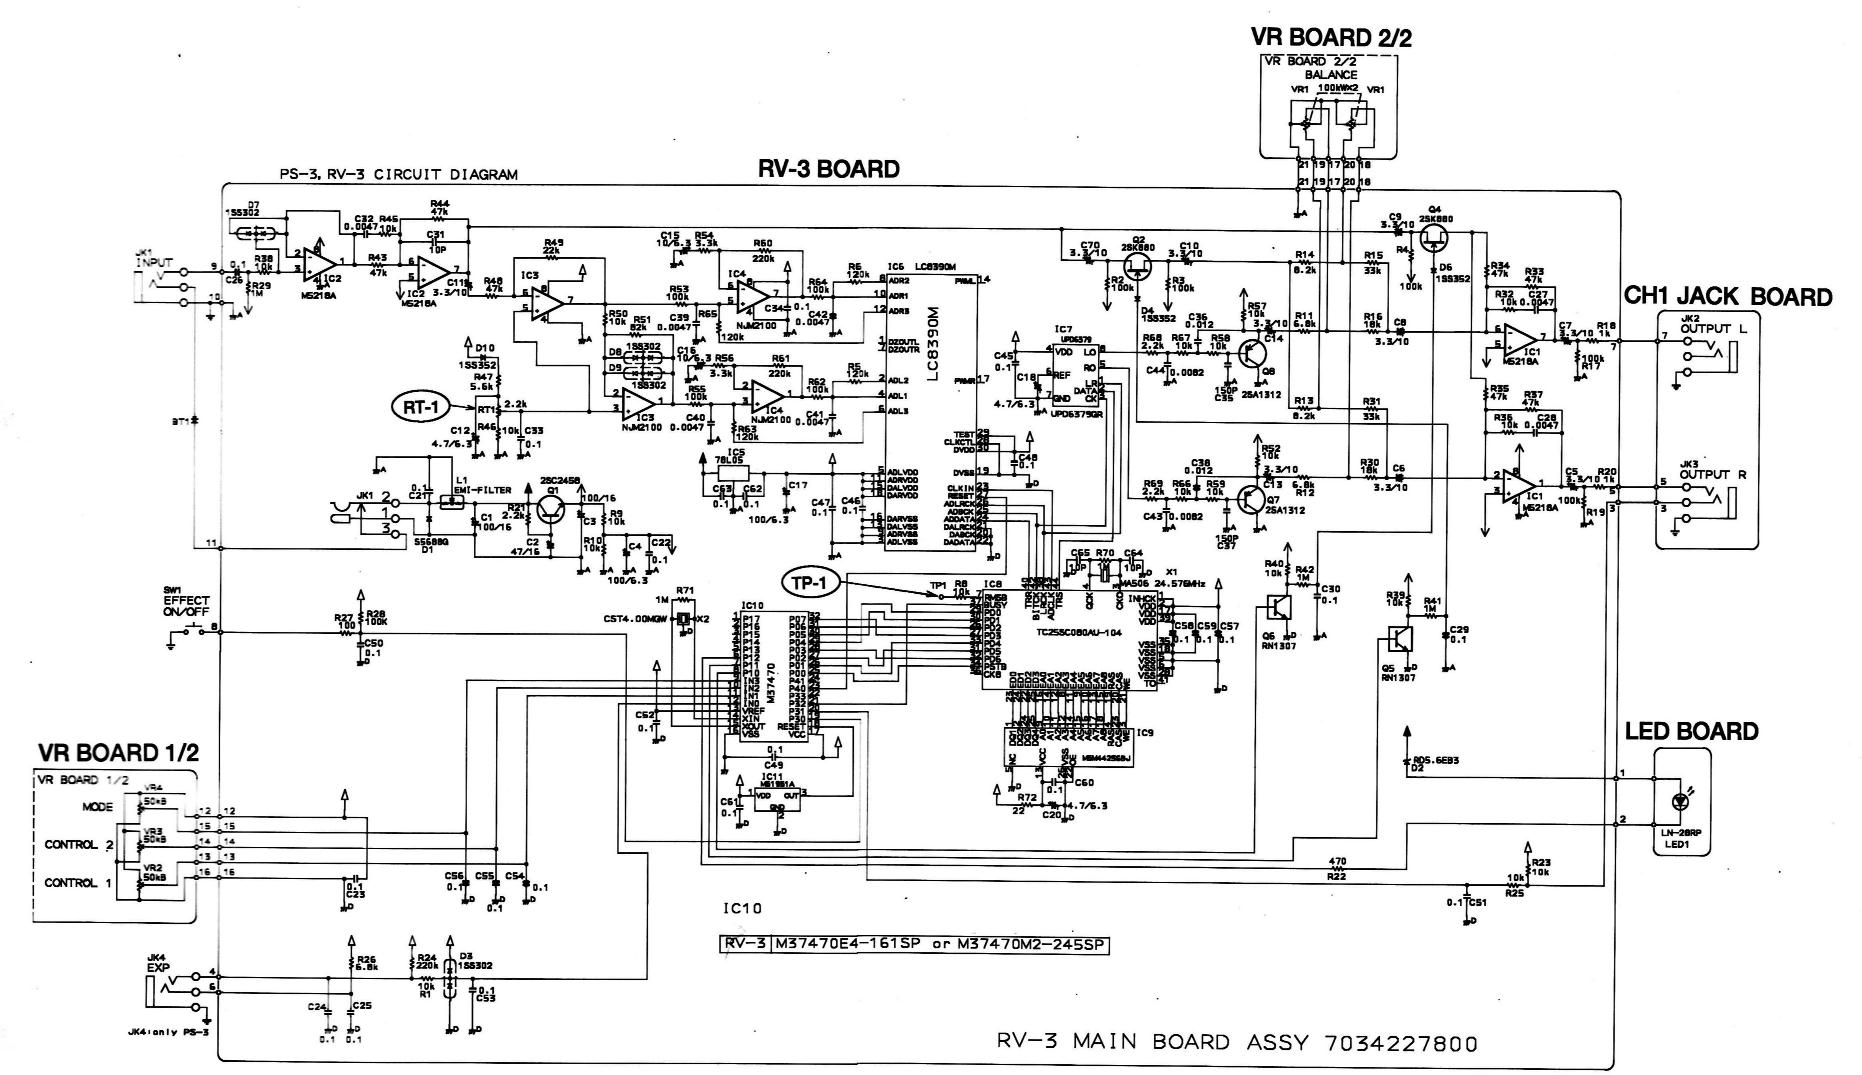 Dod Wiring Diagram as well Hm2 Heavy Metal additionally Schematic moreover YXIxNS1zY2hlbWF0aWNz further Reverb Pedal Circuit Schematic. on effect pedal schematics